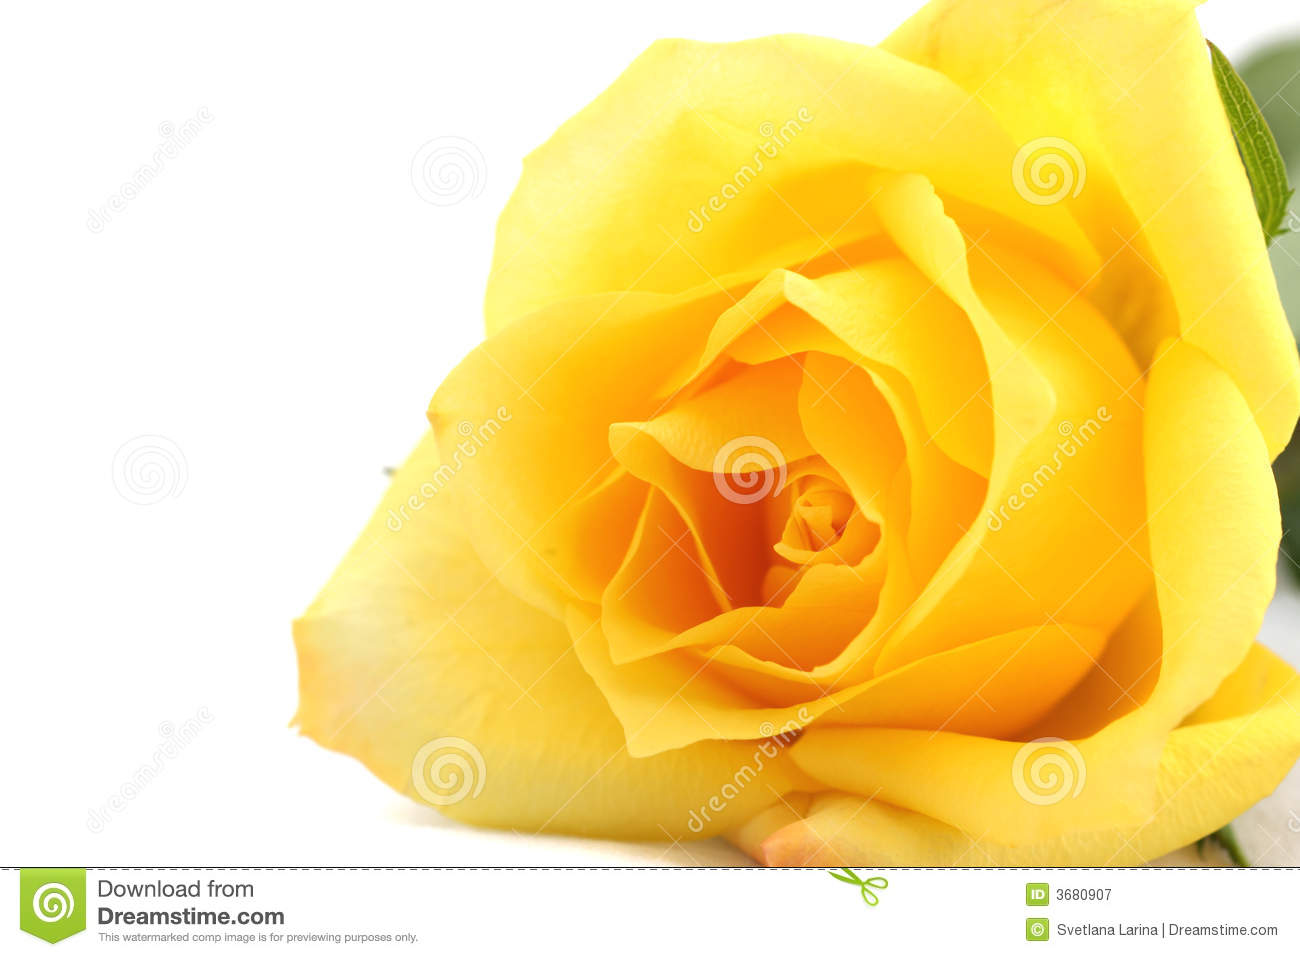 [Image: yellow-rose-3680907.jpg]